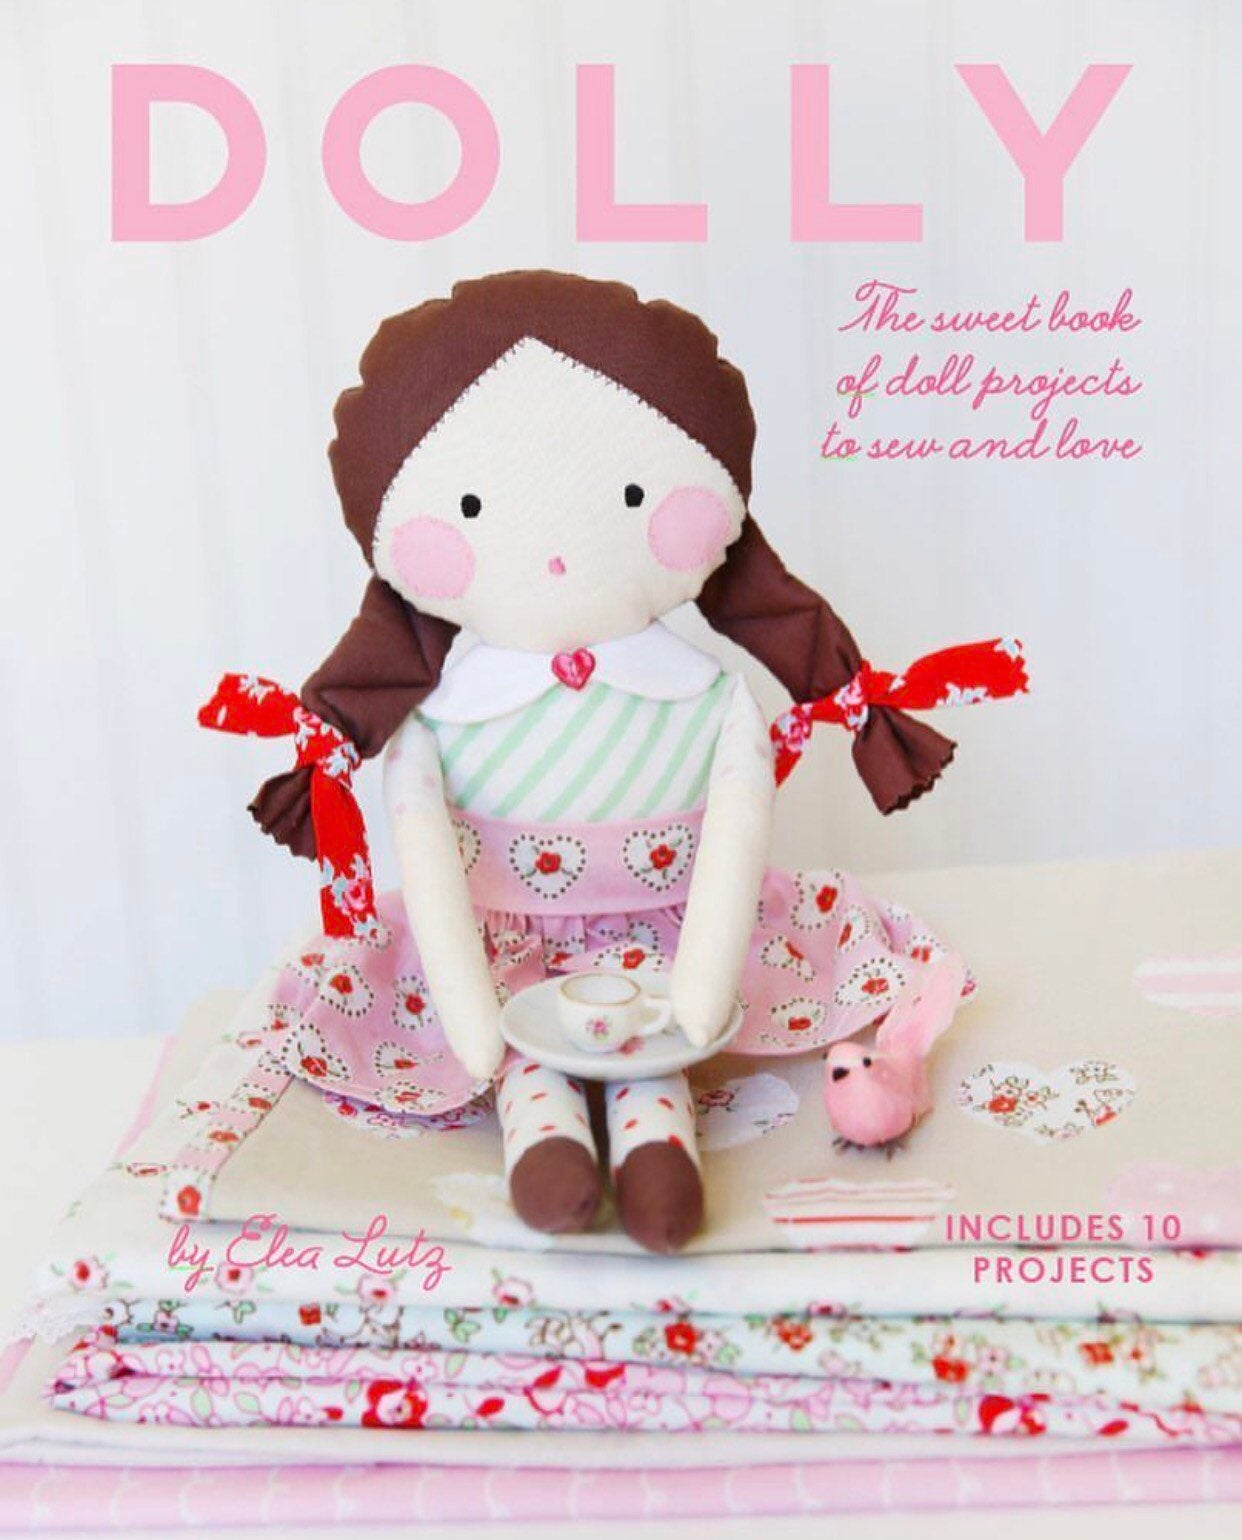 Yardage Book Cover Diy : Yard little dolly by elea lutz for penny rose fabrics